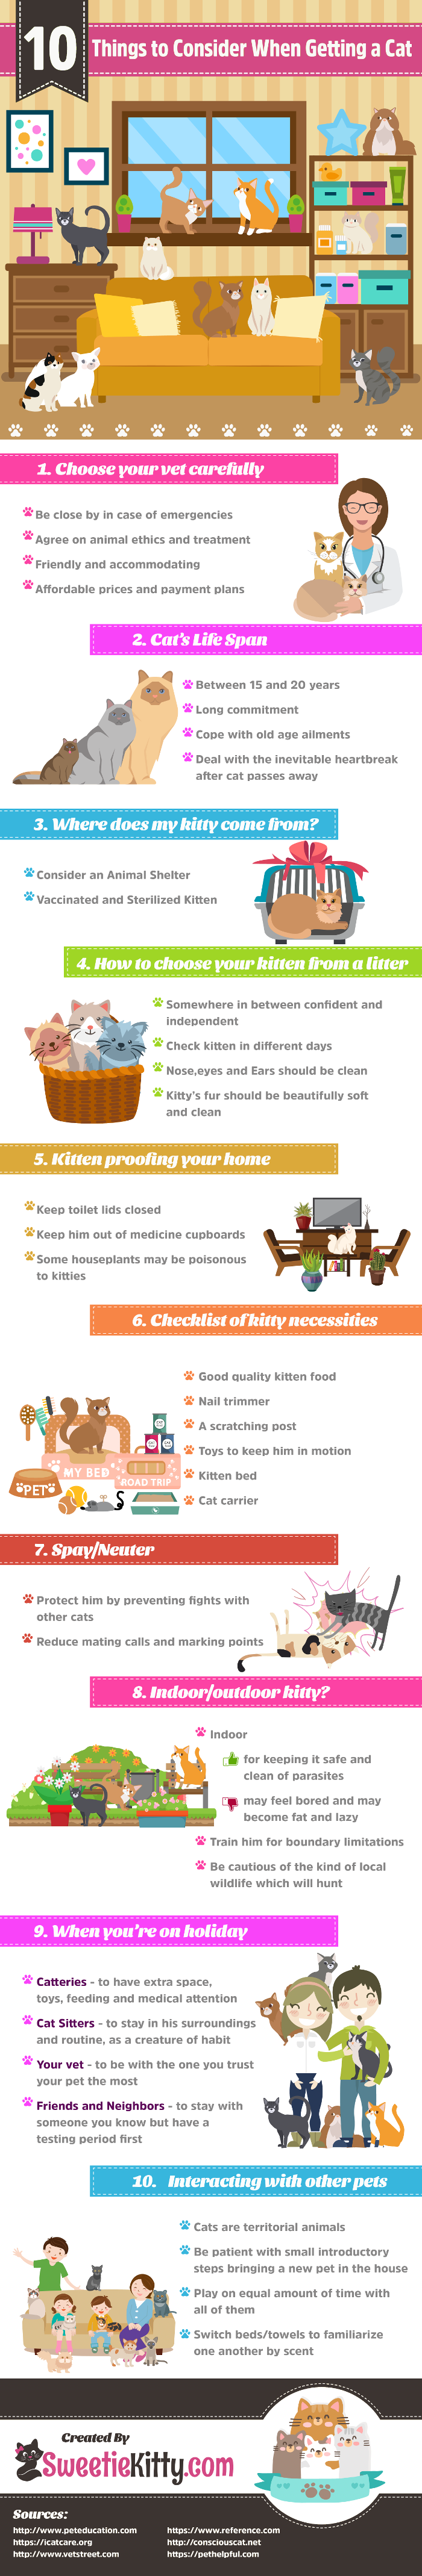 10 Things to Consider Before Getting a Cat